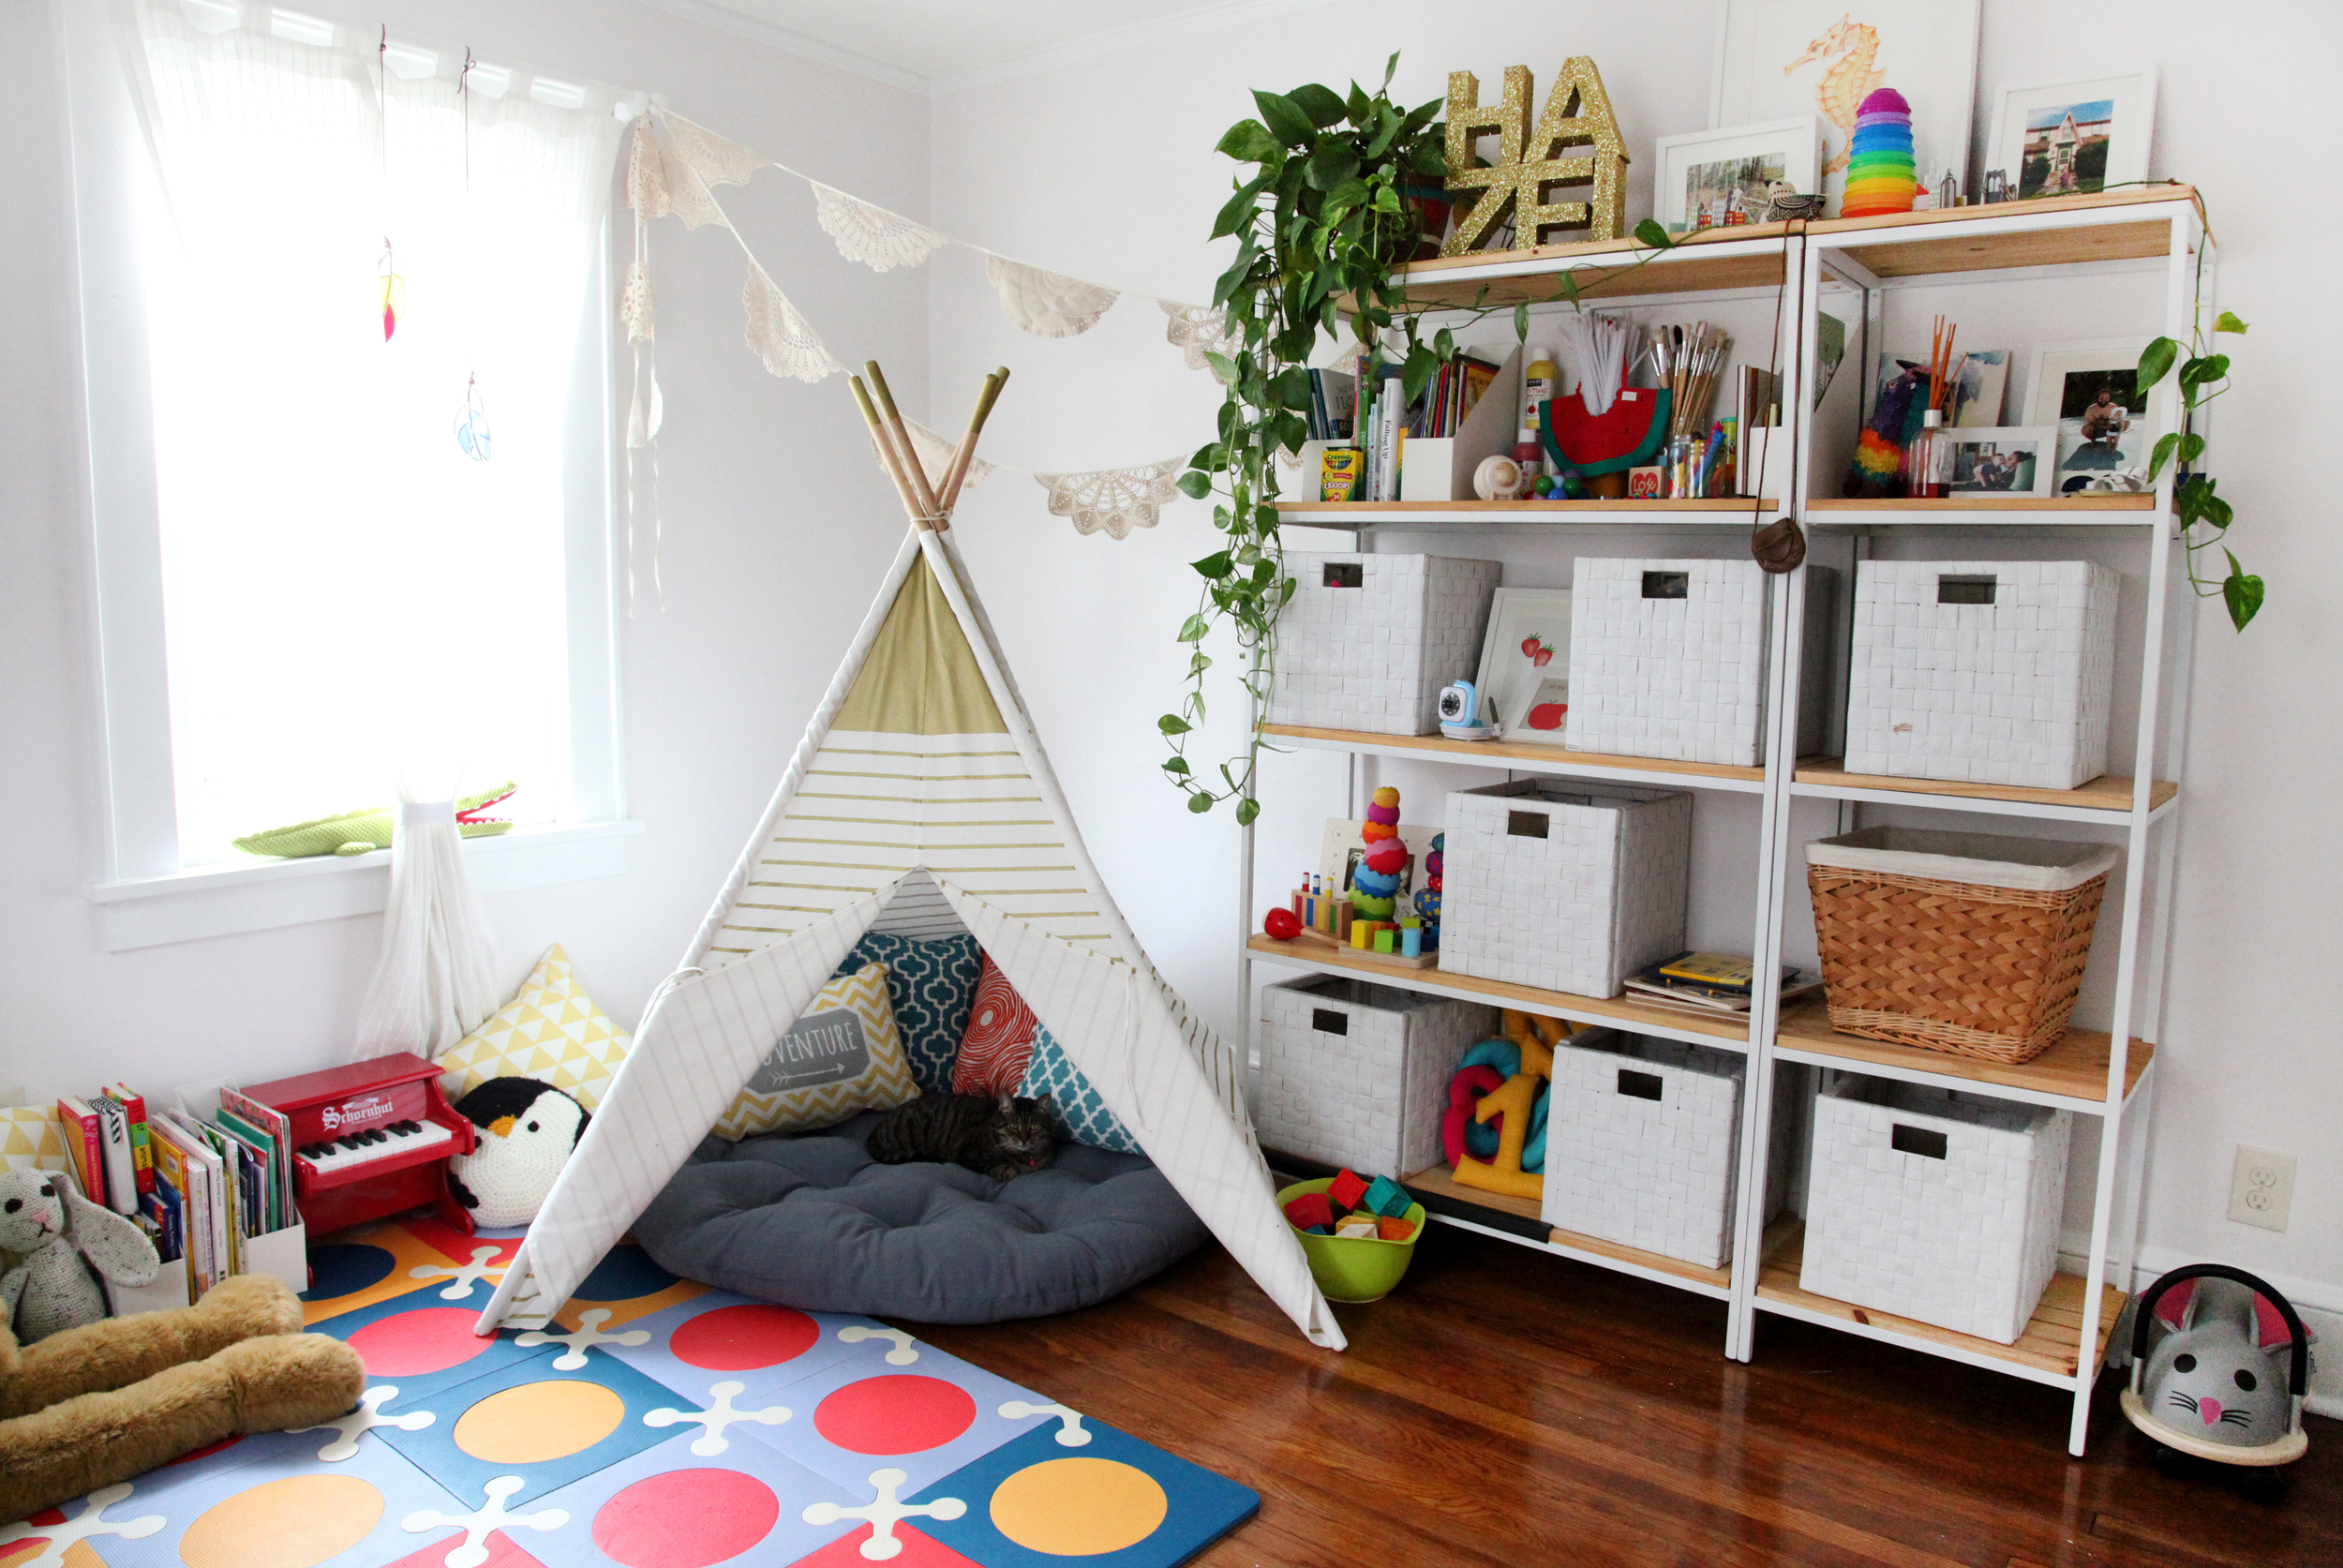 I wanted Hazel's room to be light and airy,but filled with things that inspire creativity and play. We're really good at making a mess!